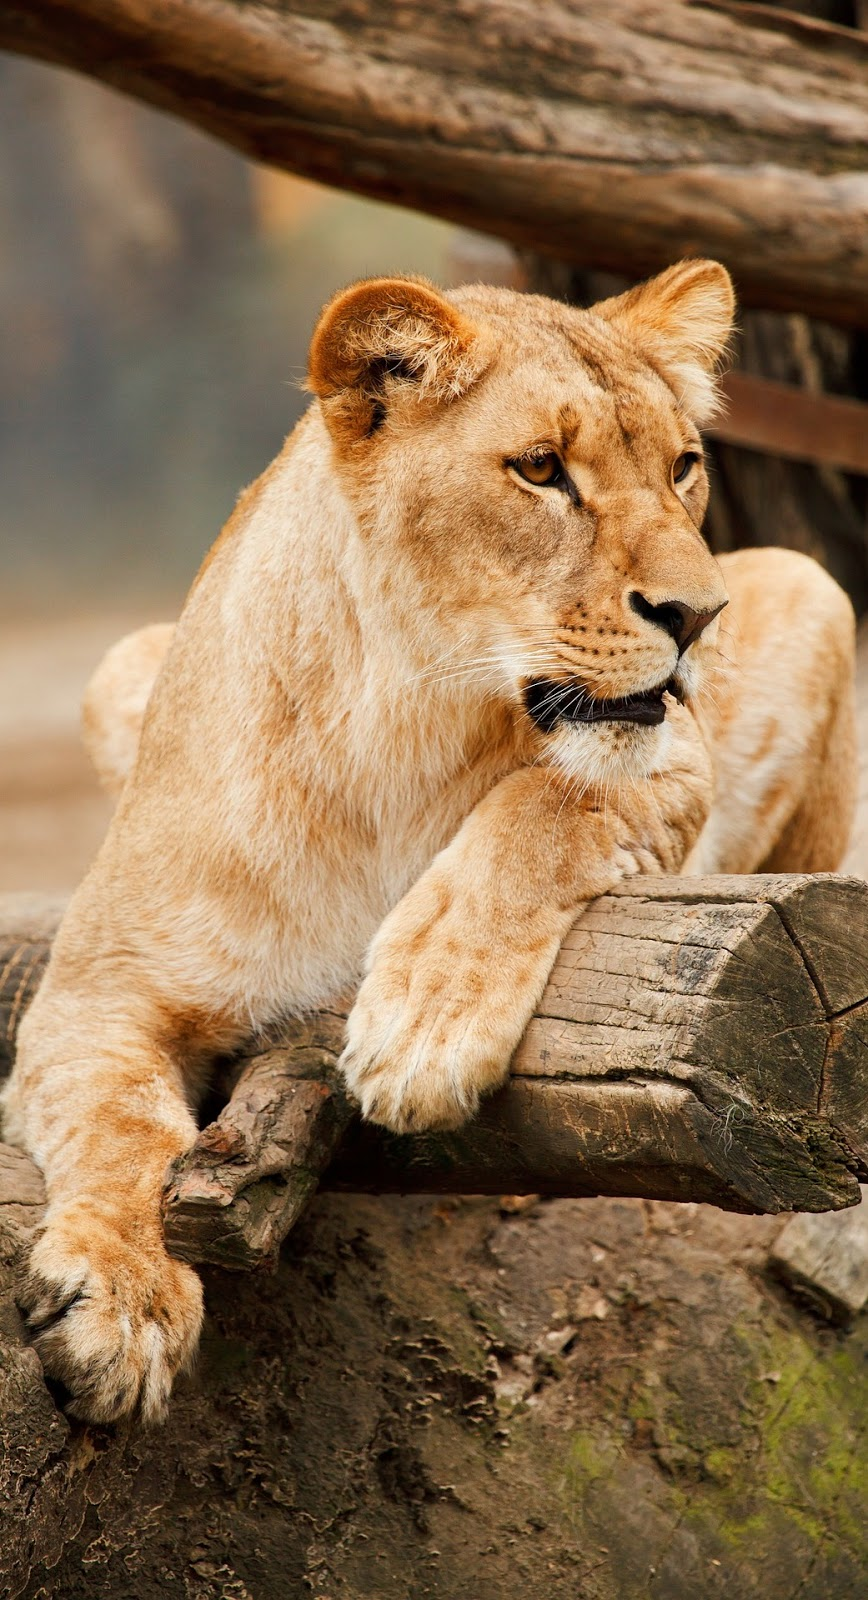 Picture of a lioness.